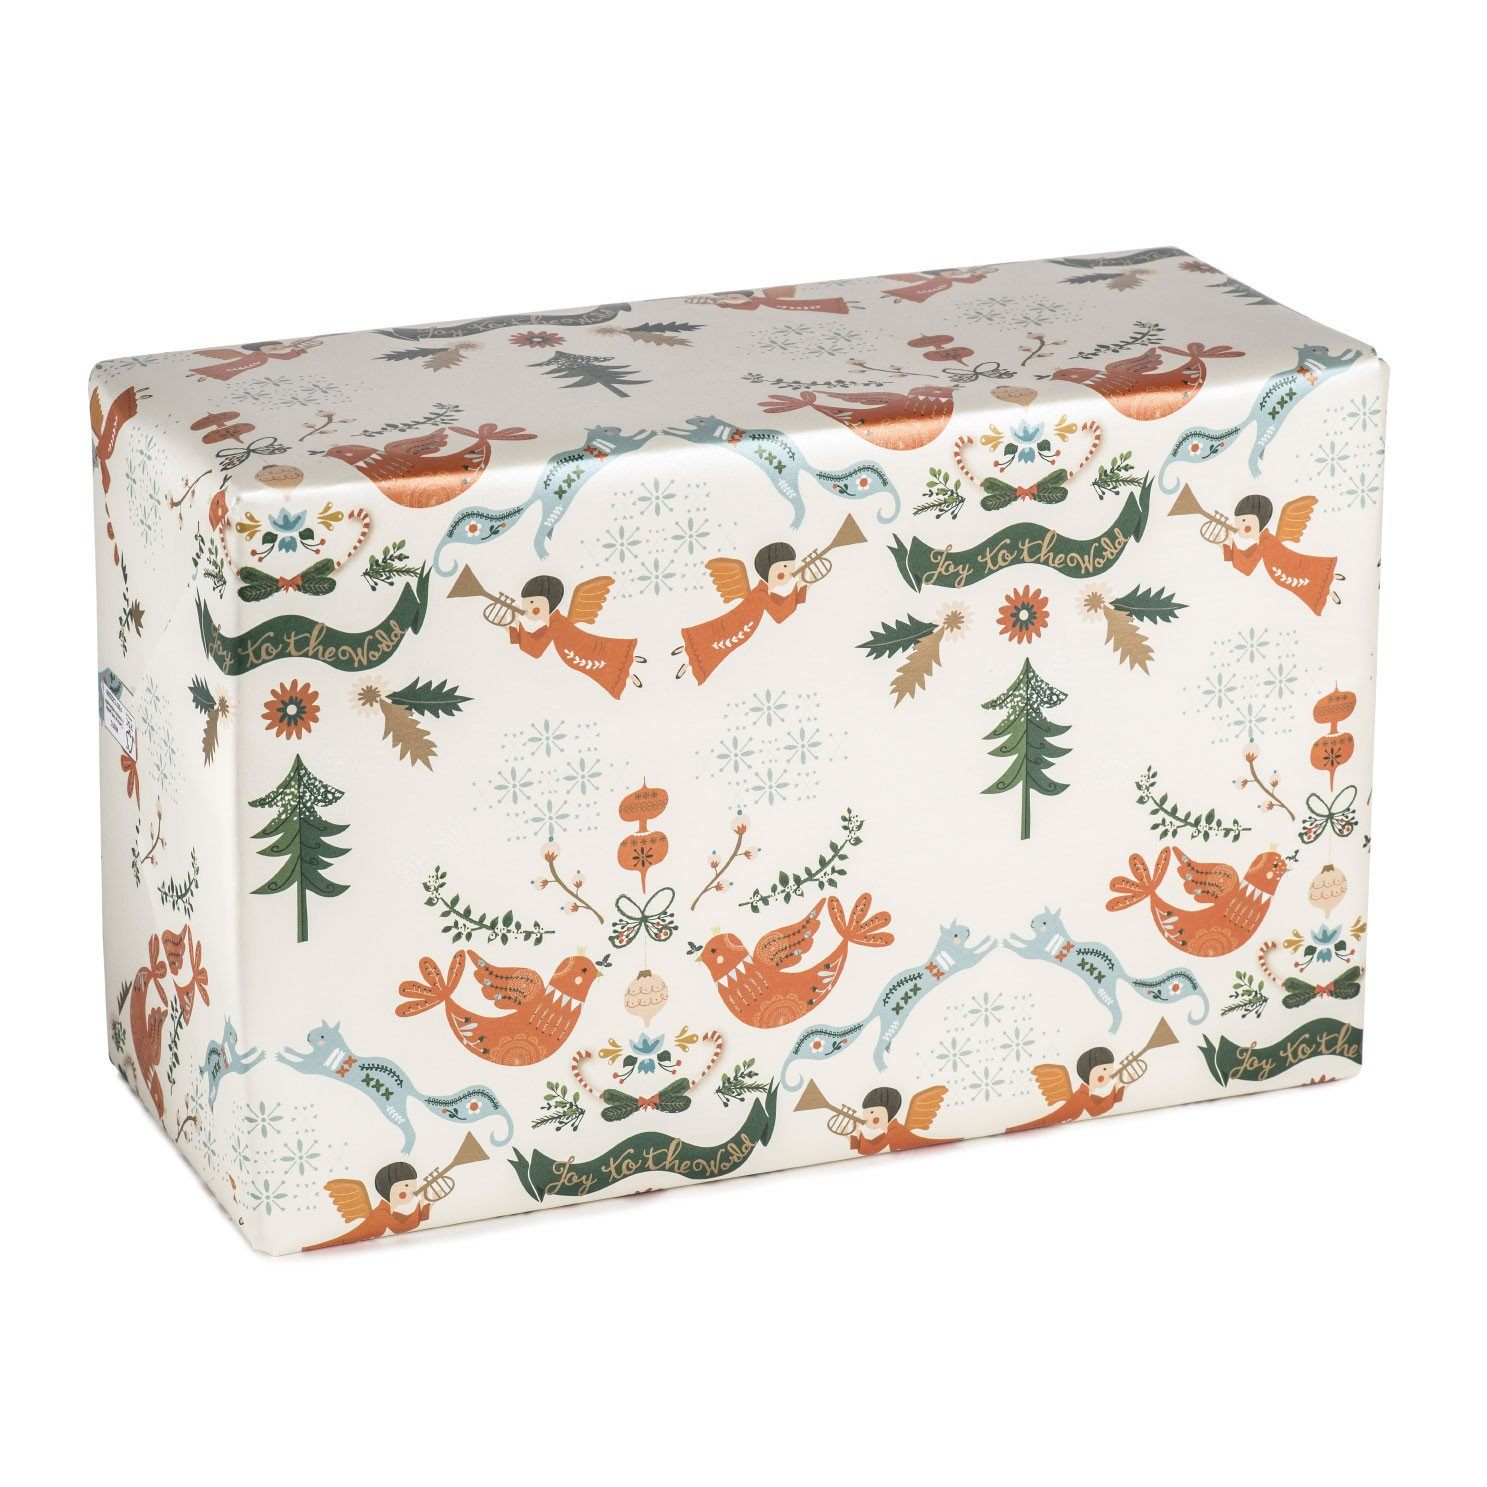 Joy To The World Wrapping Paper - Wrapping Papers - MULTIFOLIA ATELIER di Rita Girola - Naiise